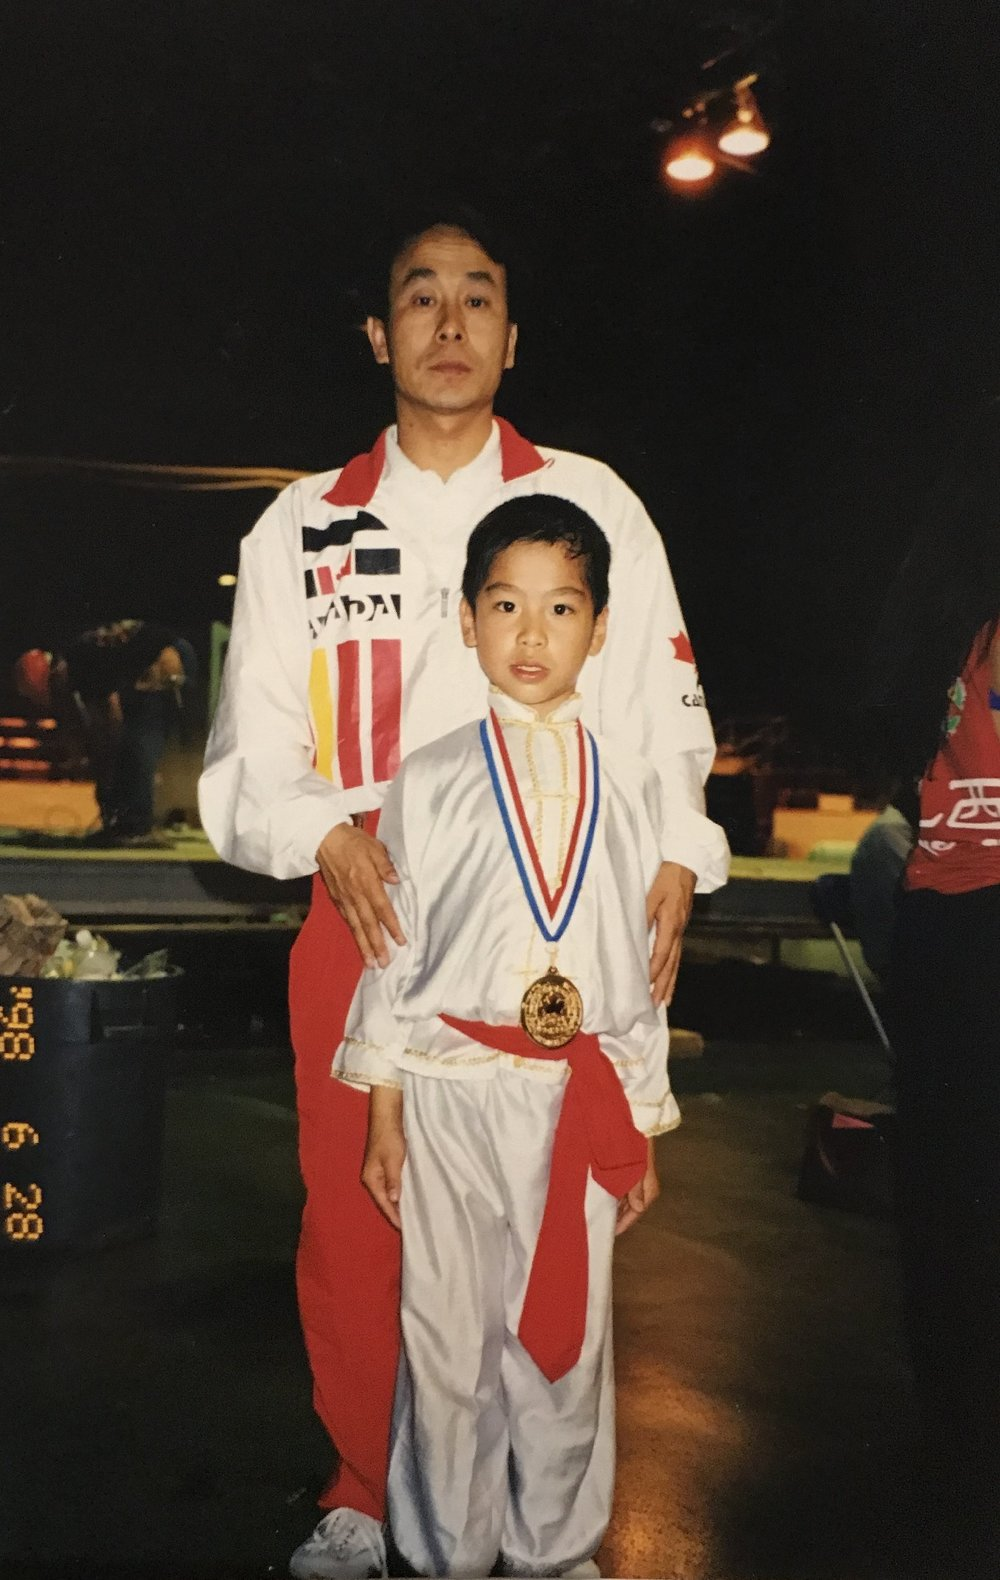 A young champion and coach, 1998